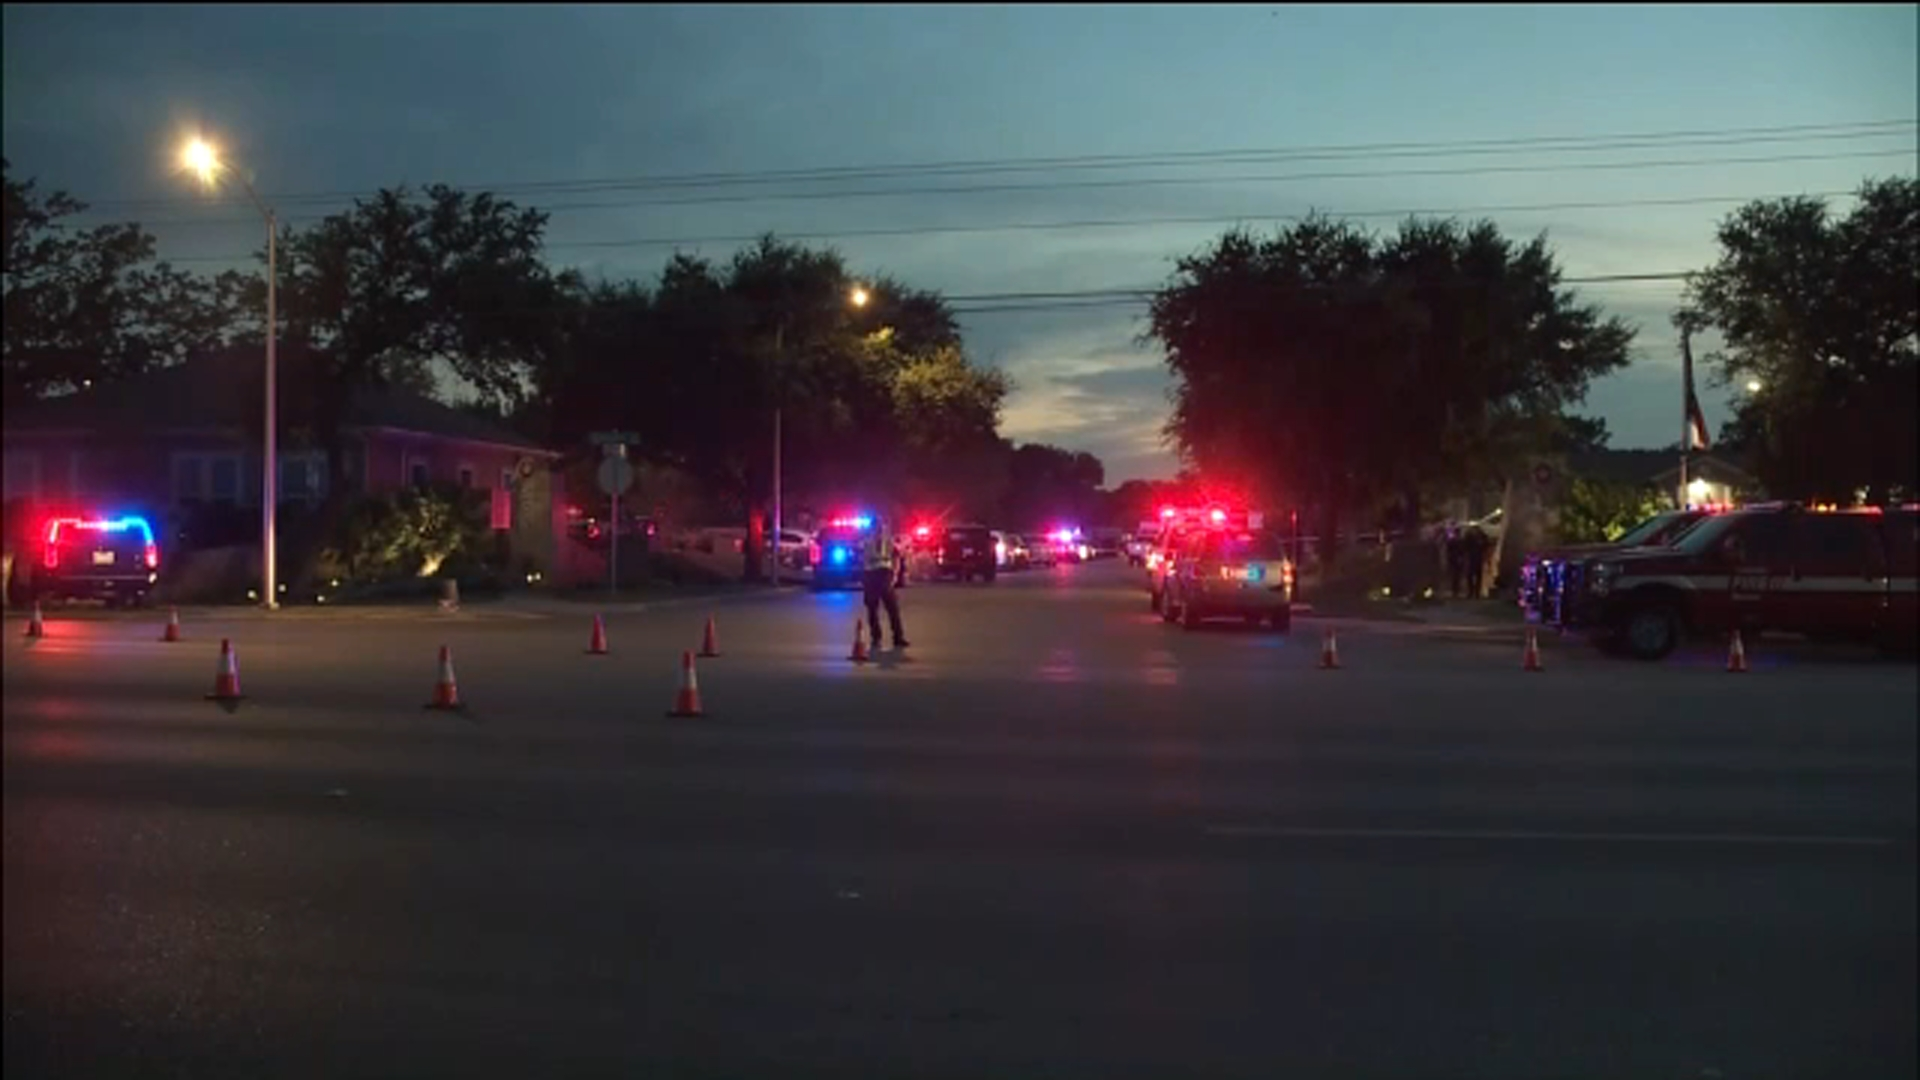 Cedar Park Texas Shooting Hostage Situation Over After 3 Officers Shot Abc13 Houston